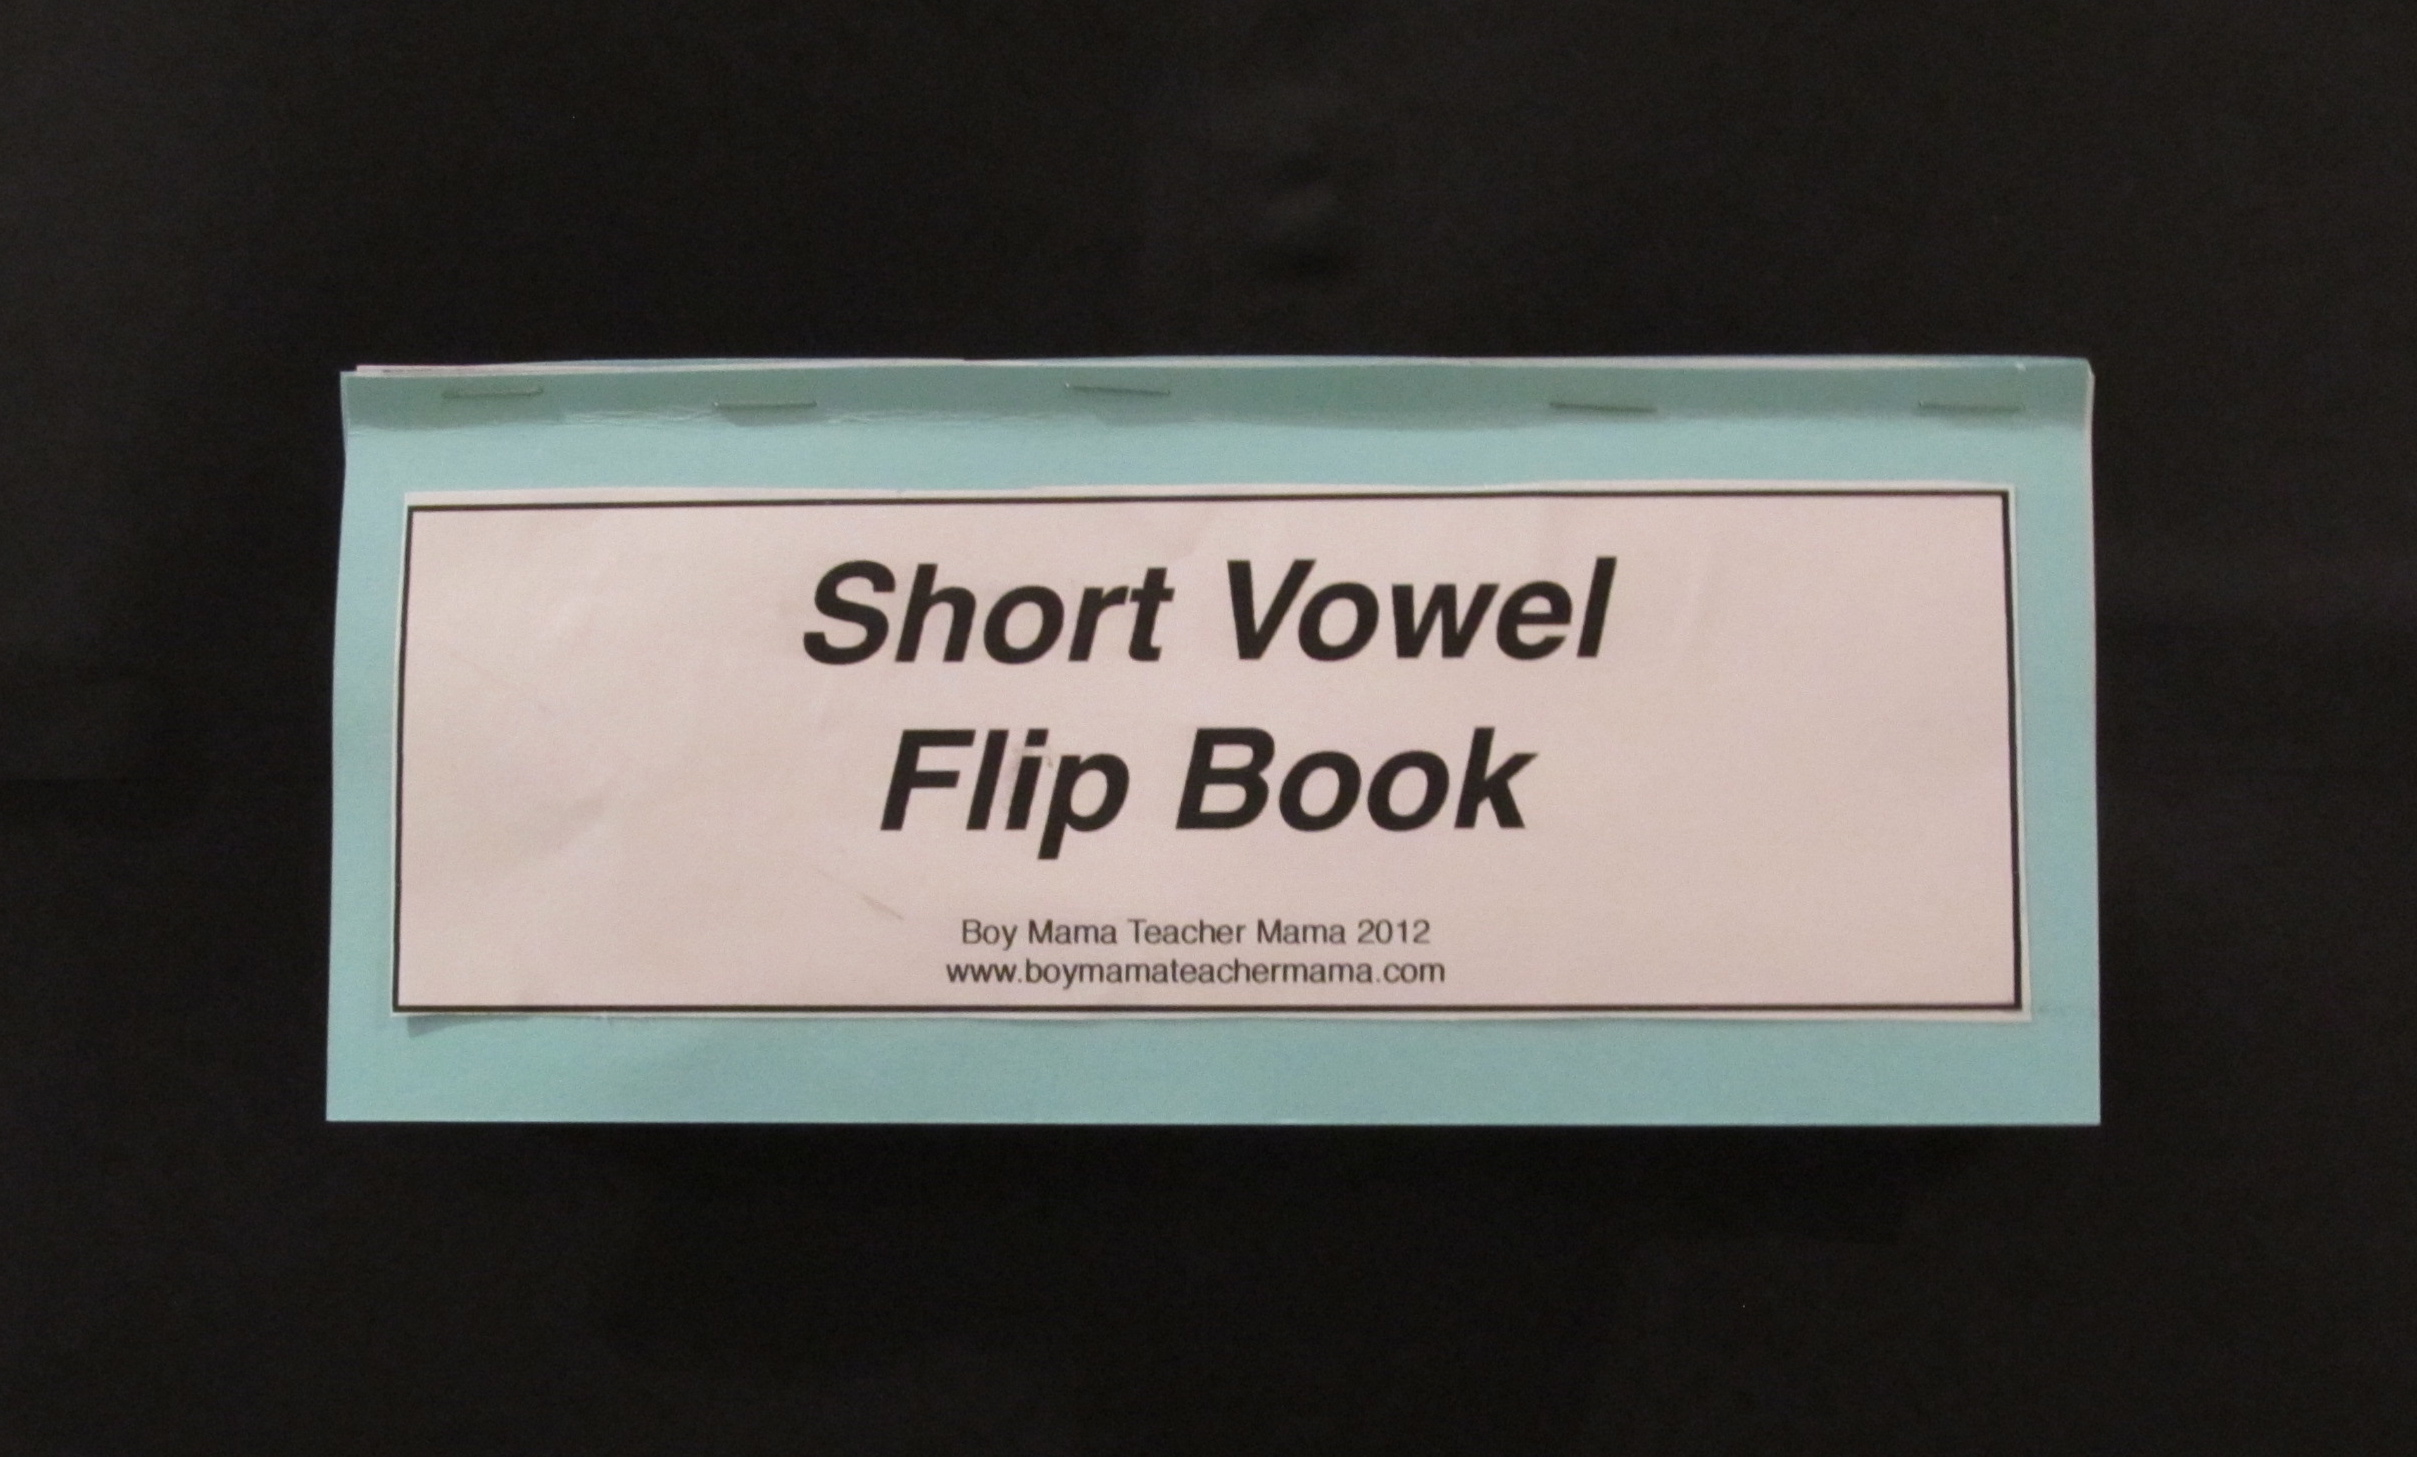 Short Vowel Flip Book Cover and Complete